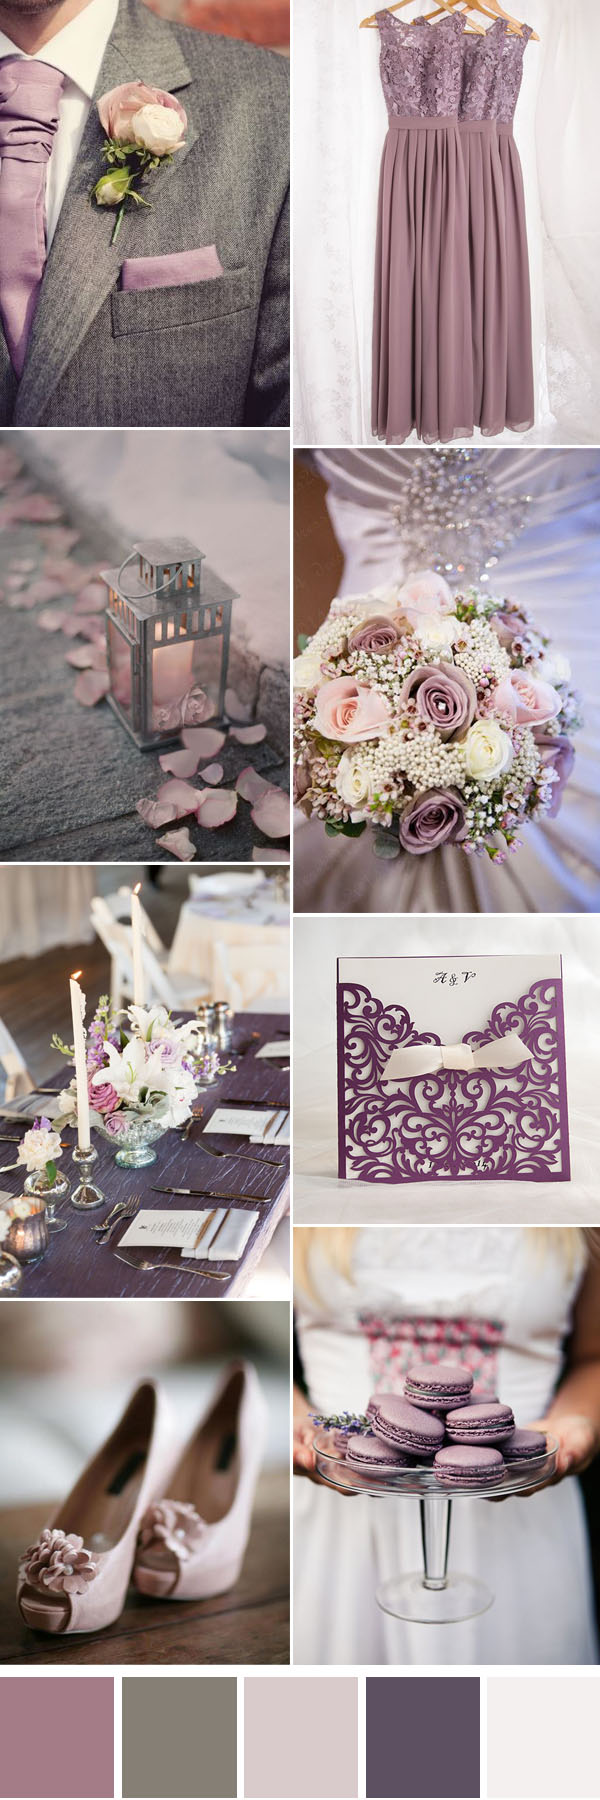 7916c247b2 Six Gorgeous Neutral Wedding Color Combos To Inspire You ...